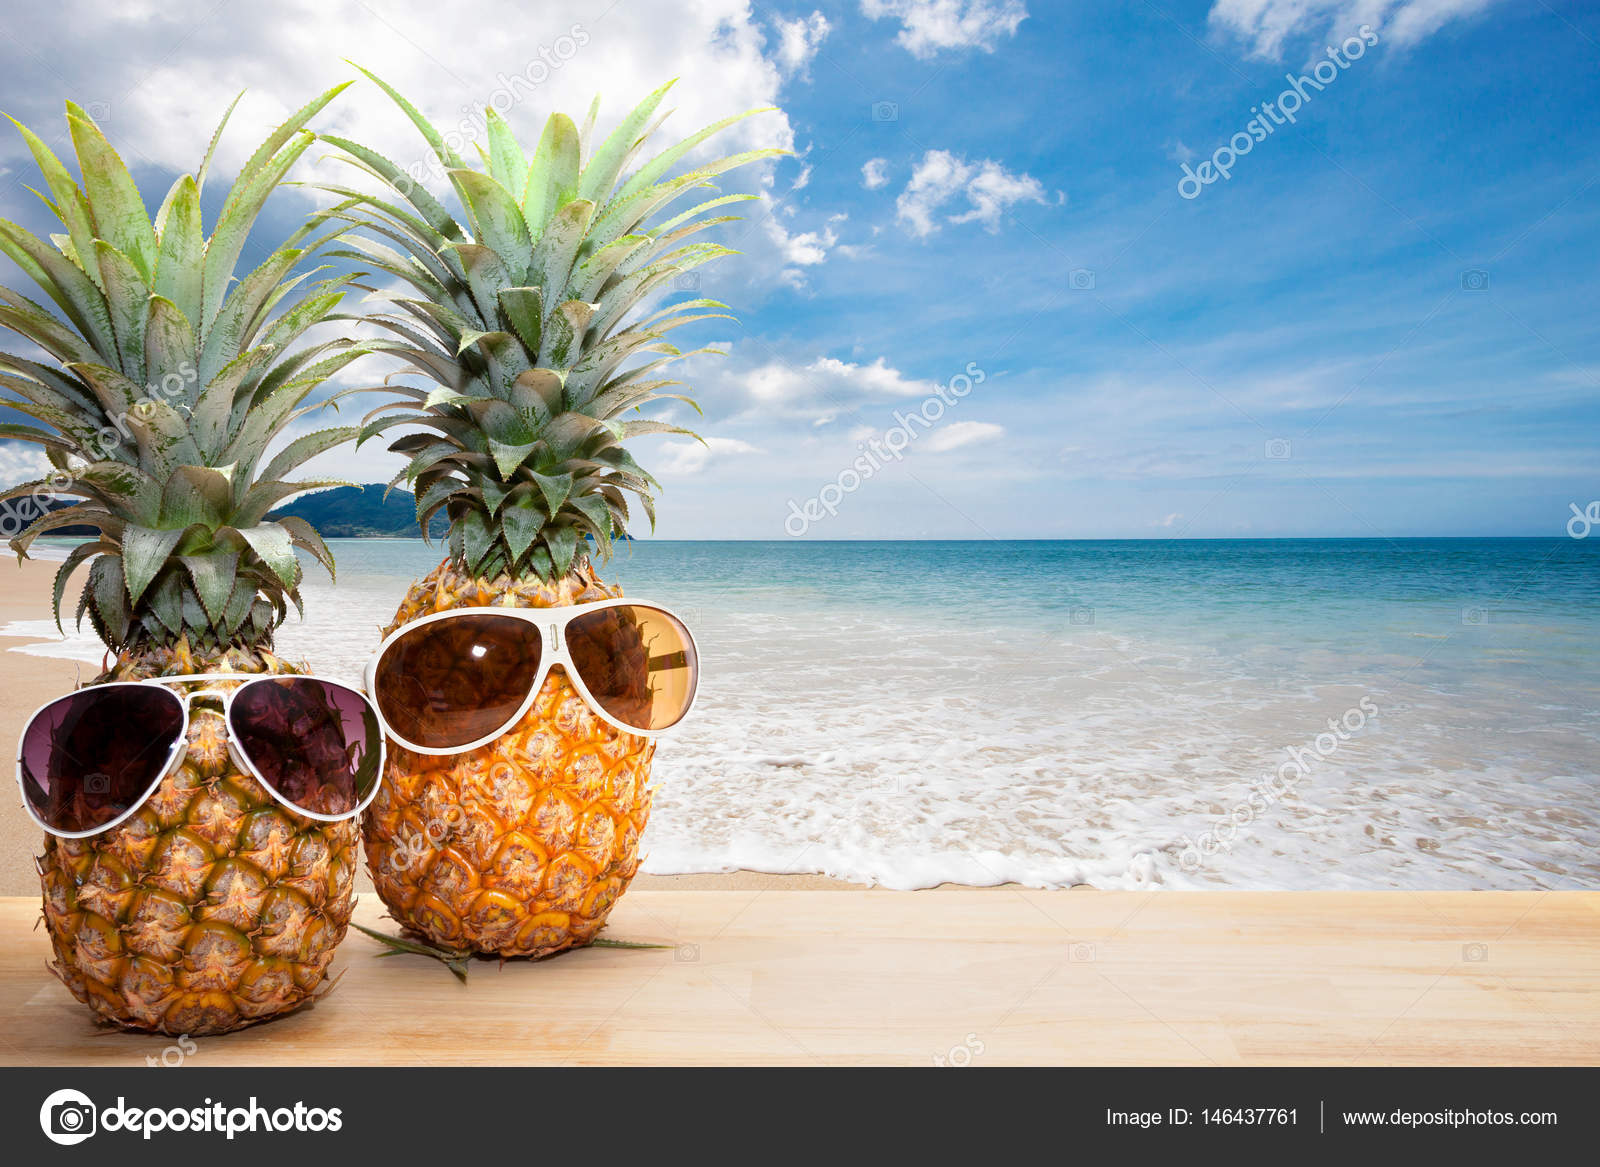 Pineapple With Sunglasses Tumblr Pineapple With Sunglasses On Wood Concept Summer